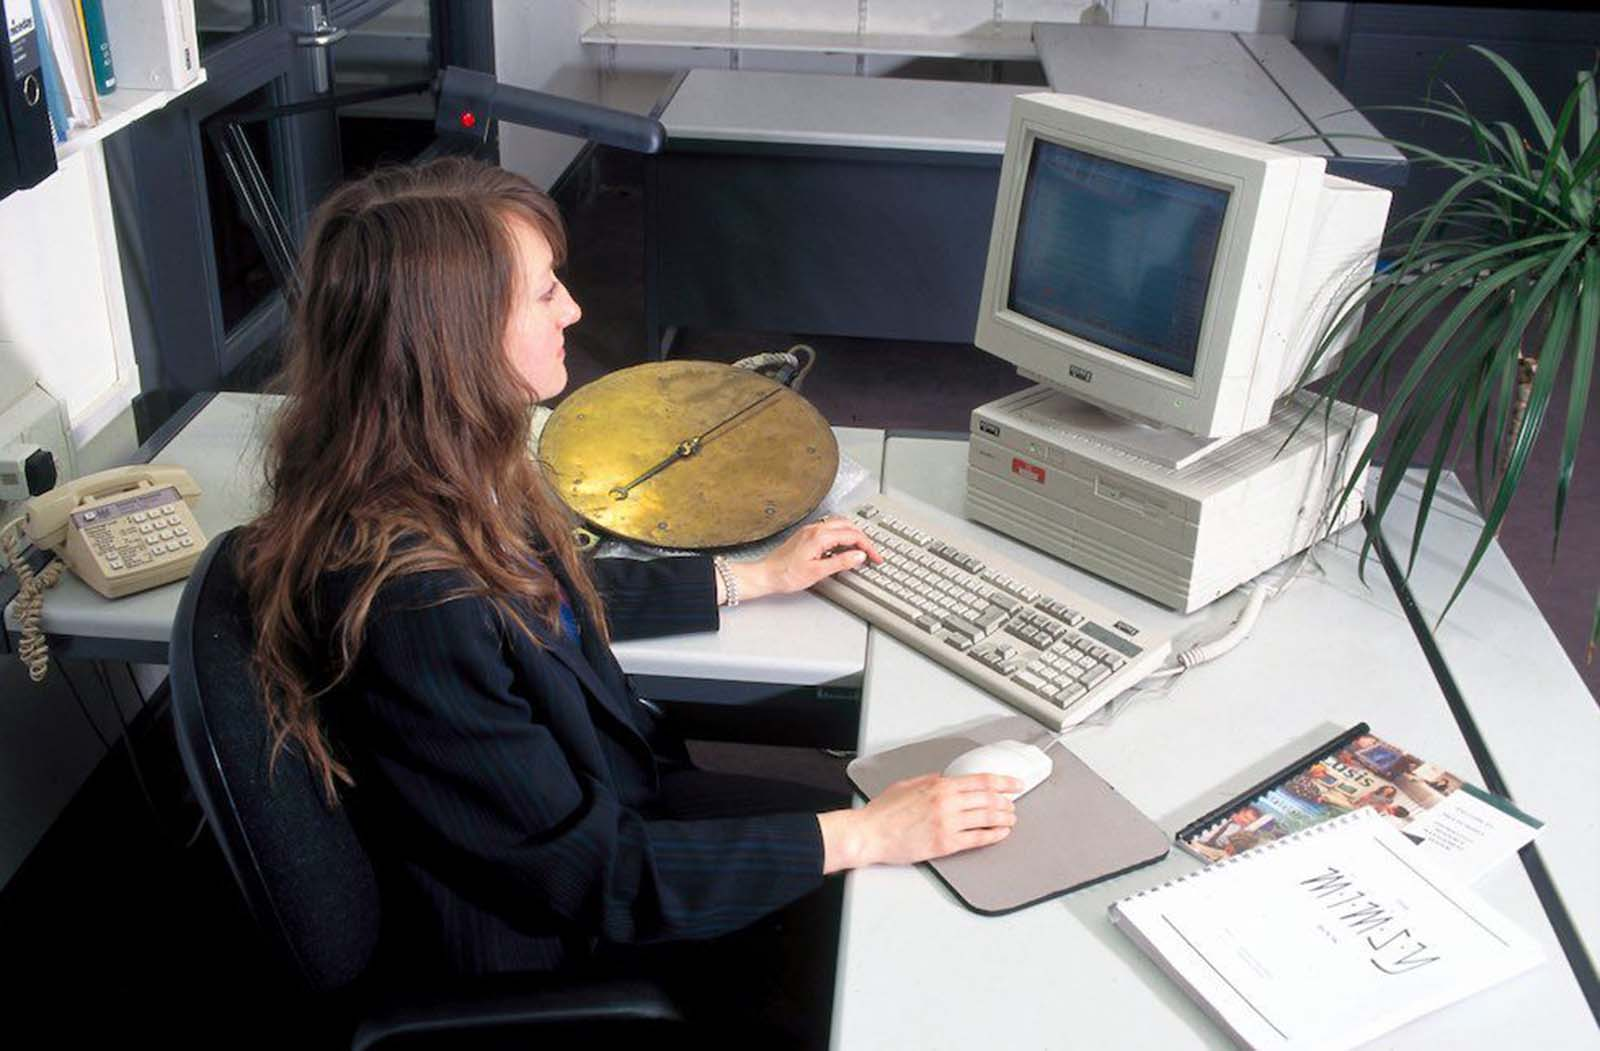 Sue Julian-Ottie, a collections system data manager, using a database computer. Her hair is long and natural, with side-swept bangs. She wears a dark, striped suit jacket. 1996.